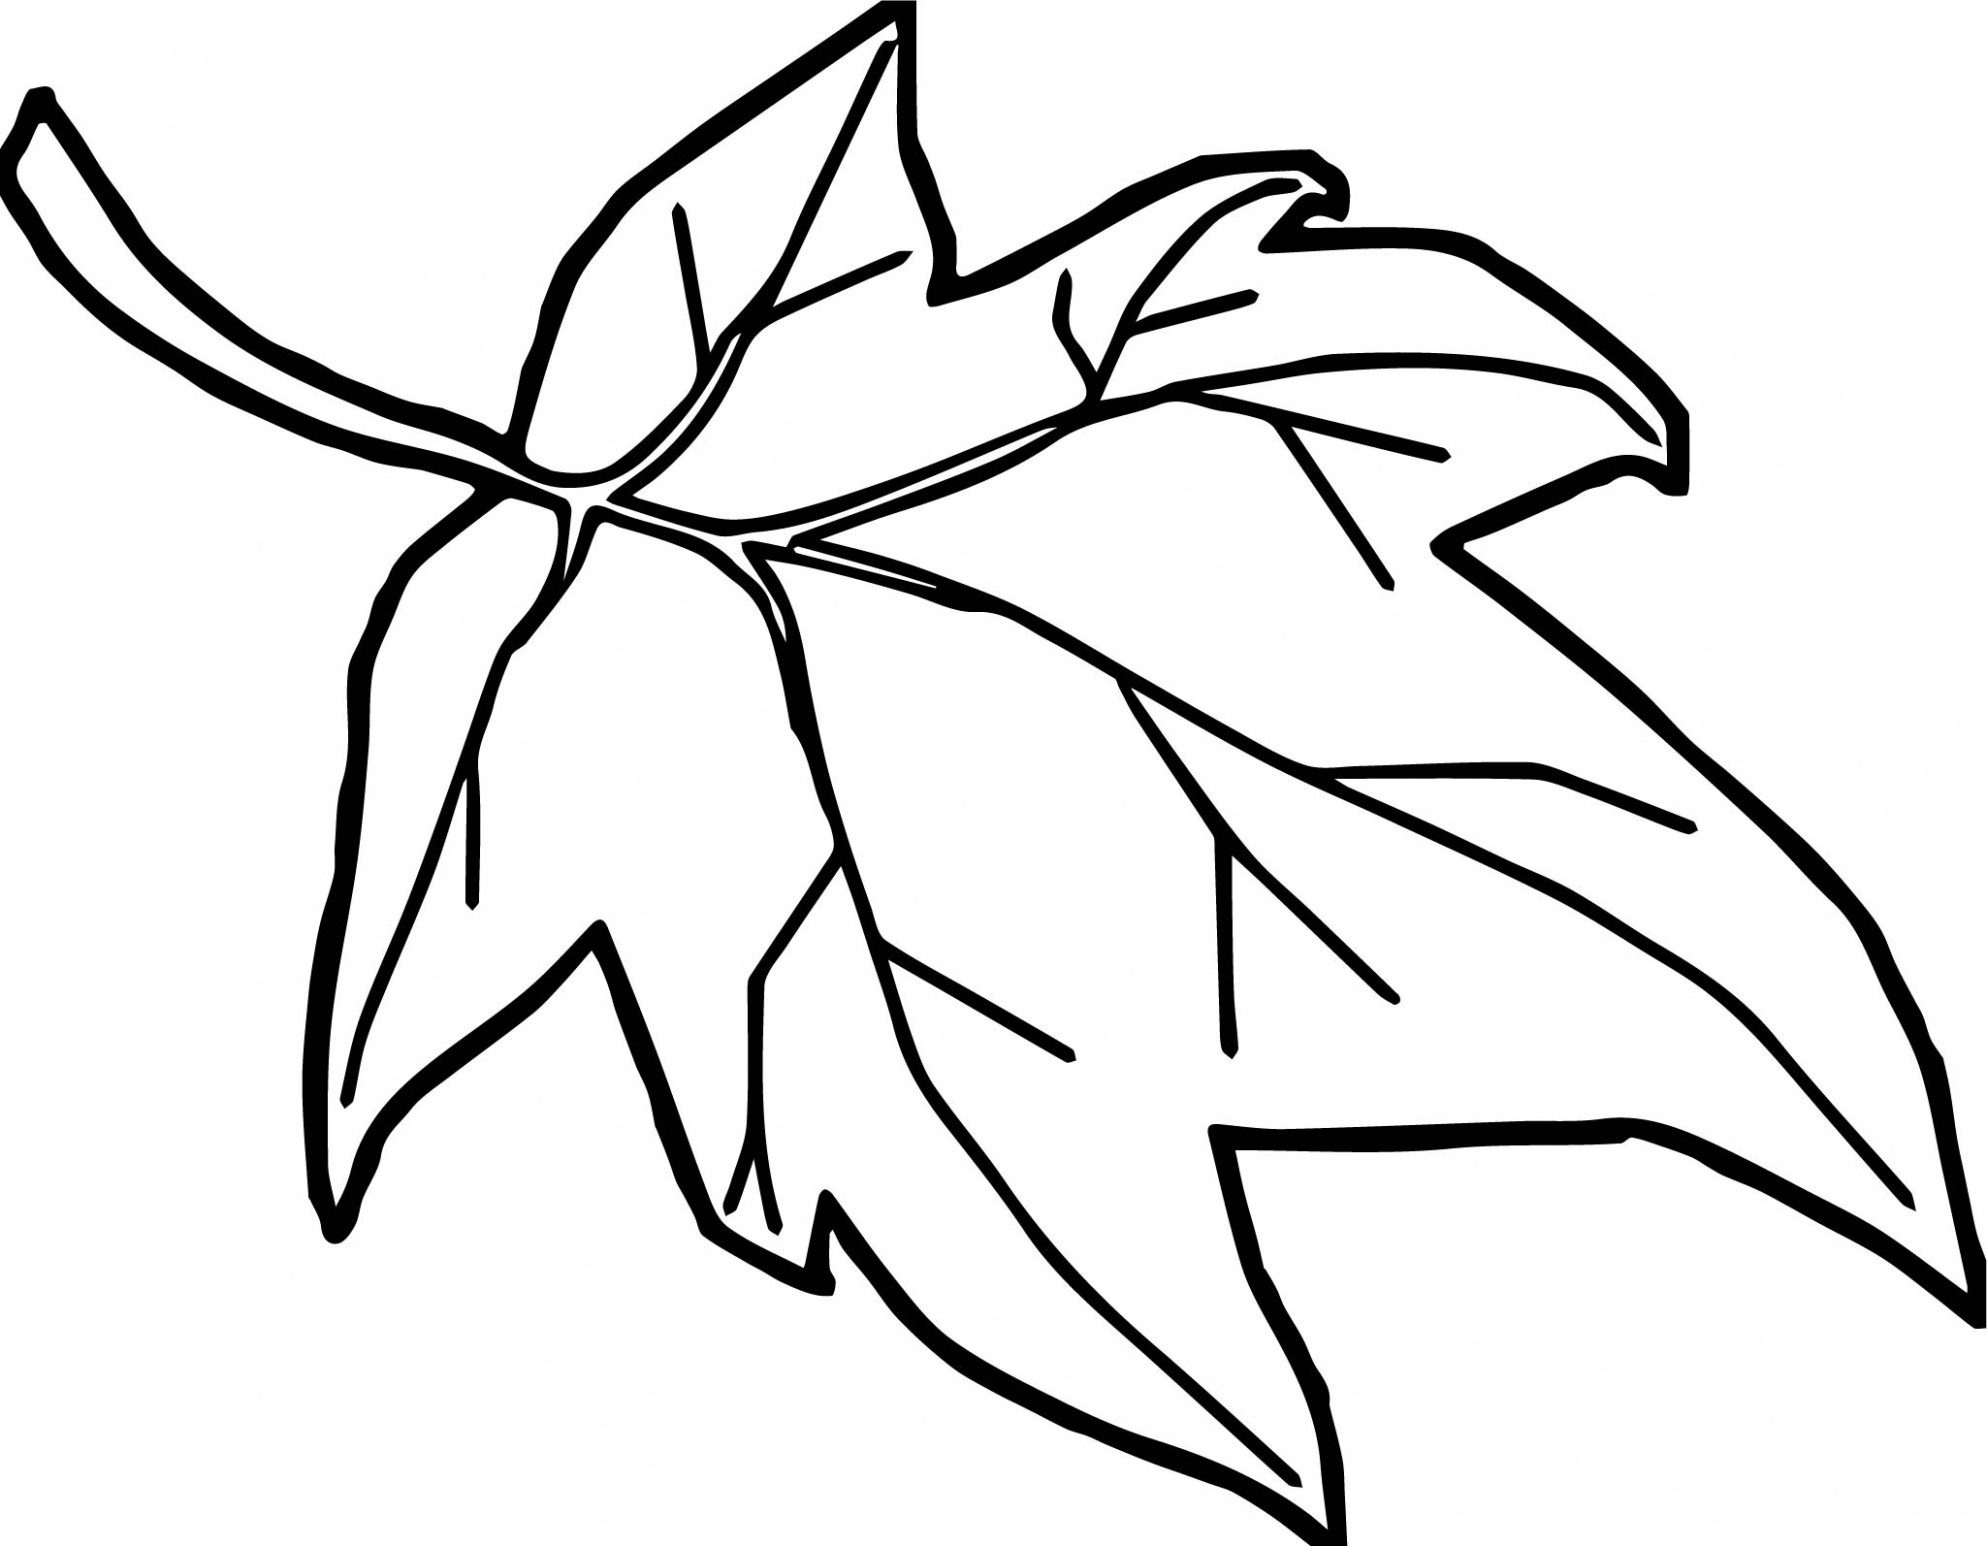 Coloring Pages: Coloring Books Autumn Maple Free Printable Preschool ...